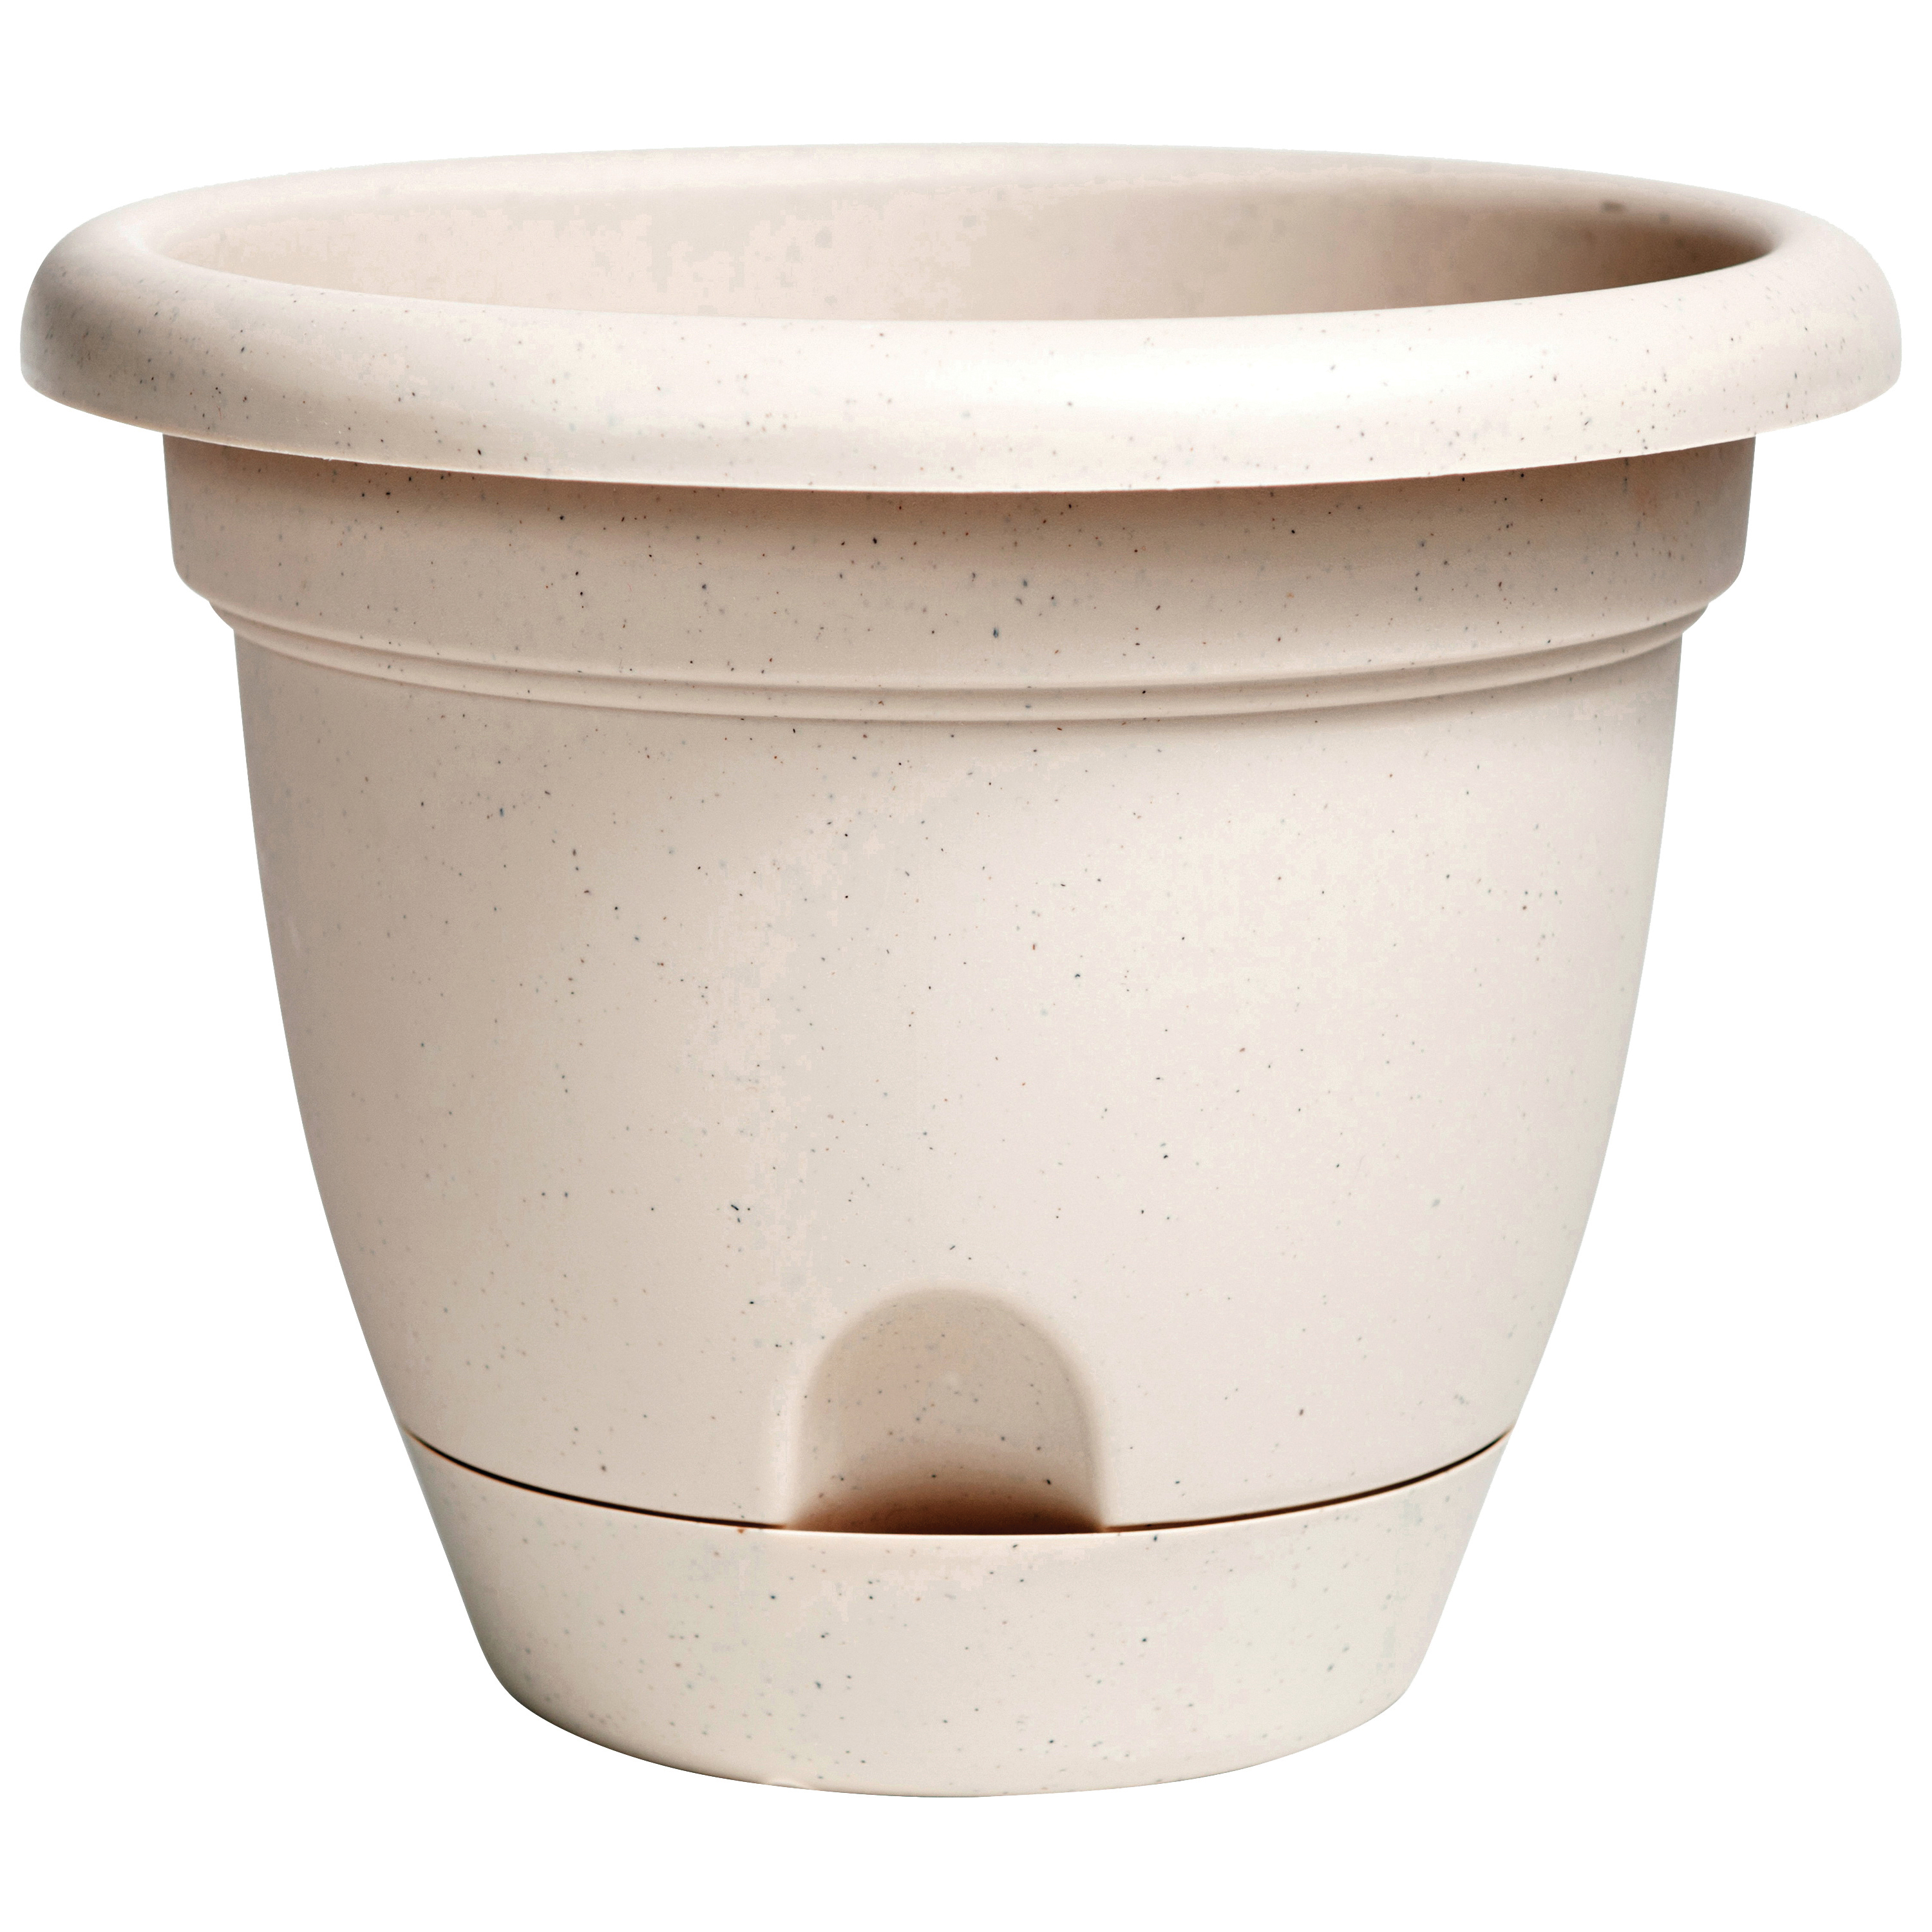 Picture of Bloem LP0635 Lucca Planter, 6.6 in W, Plastic, Taupe, Matte